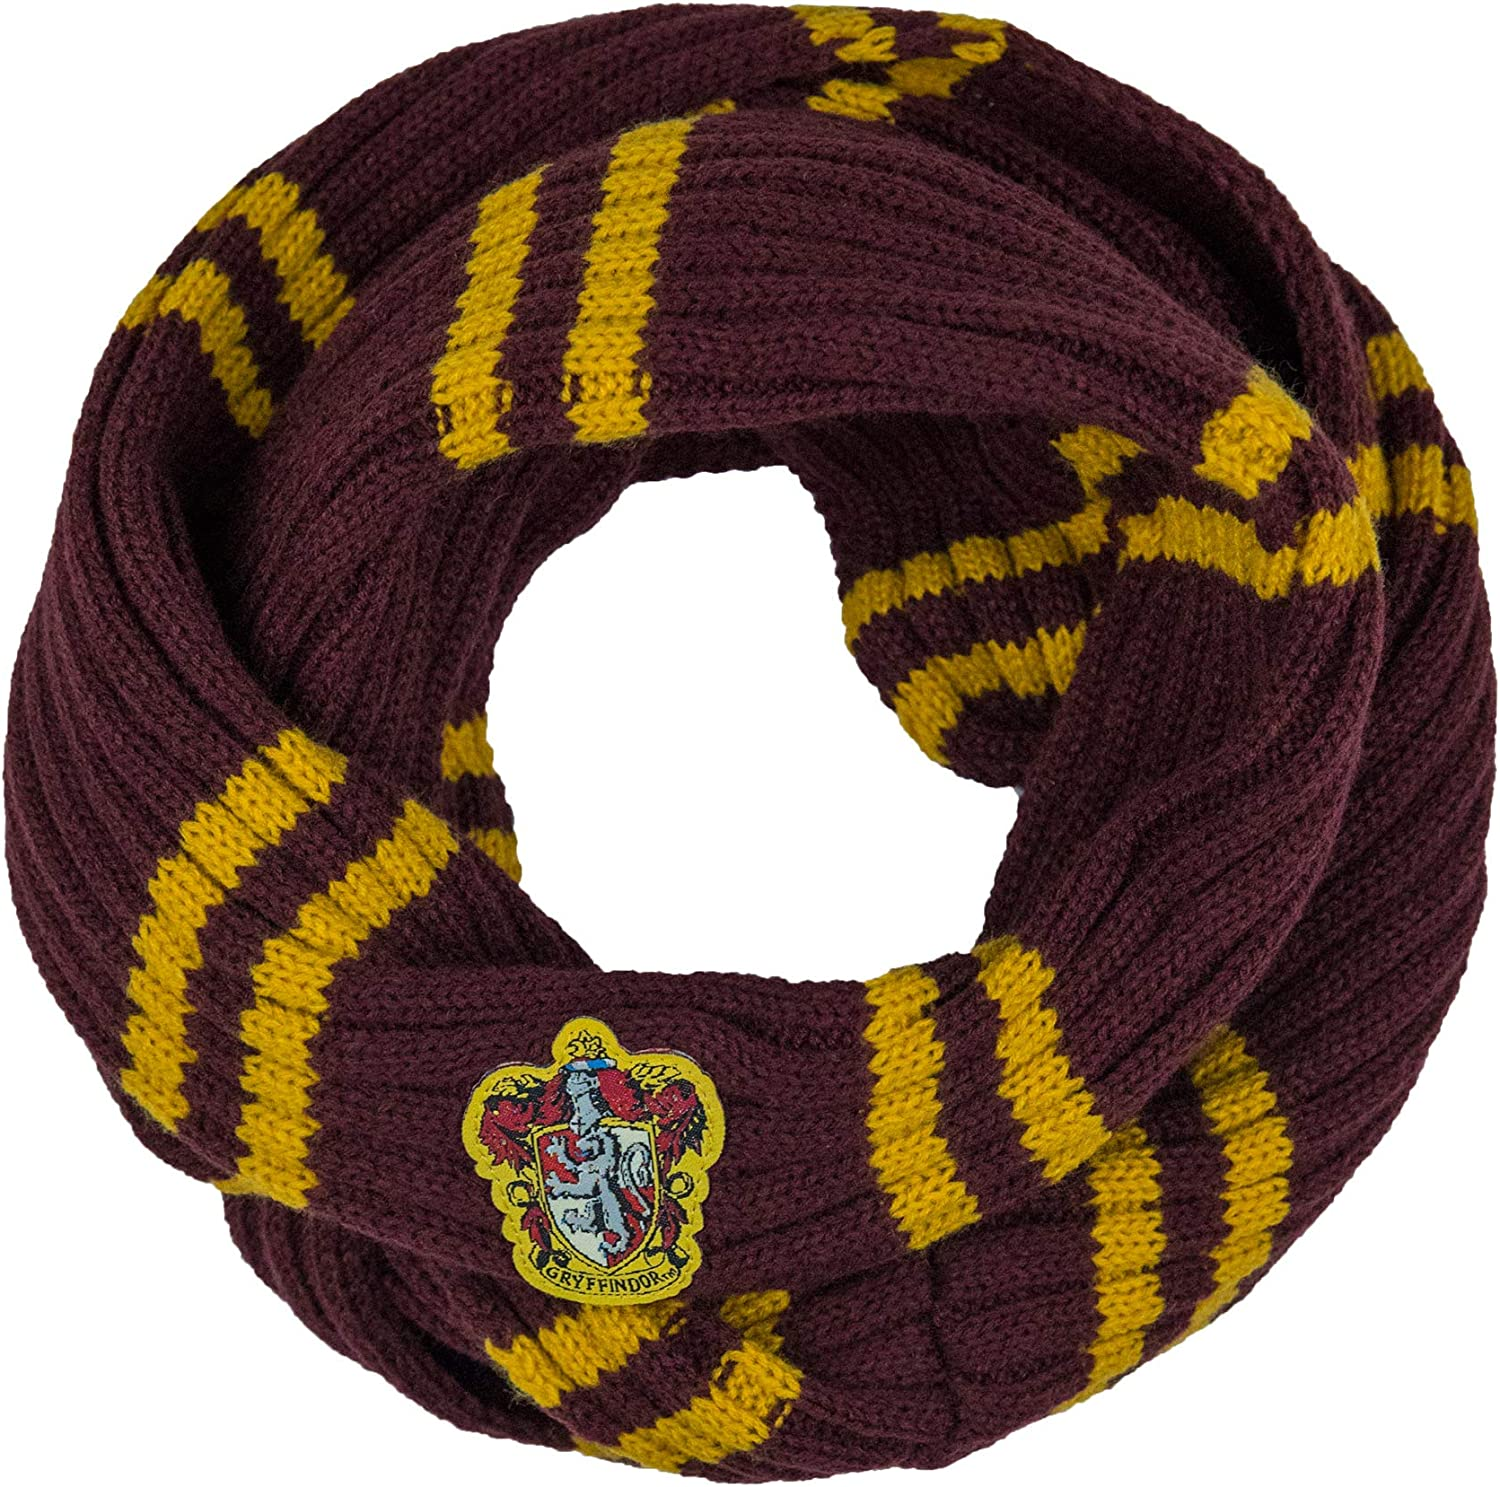 Official Harry Potter Scarf Ultra Soft Knitted Fabric Infinity